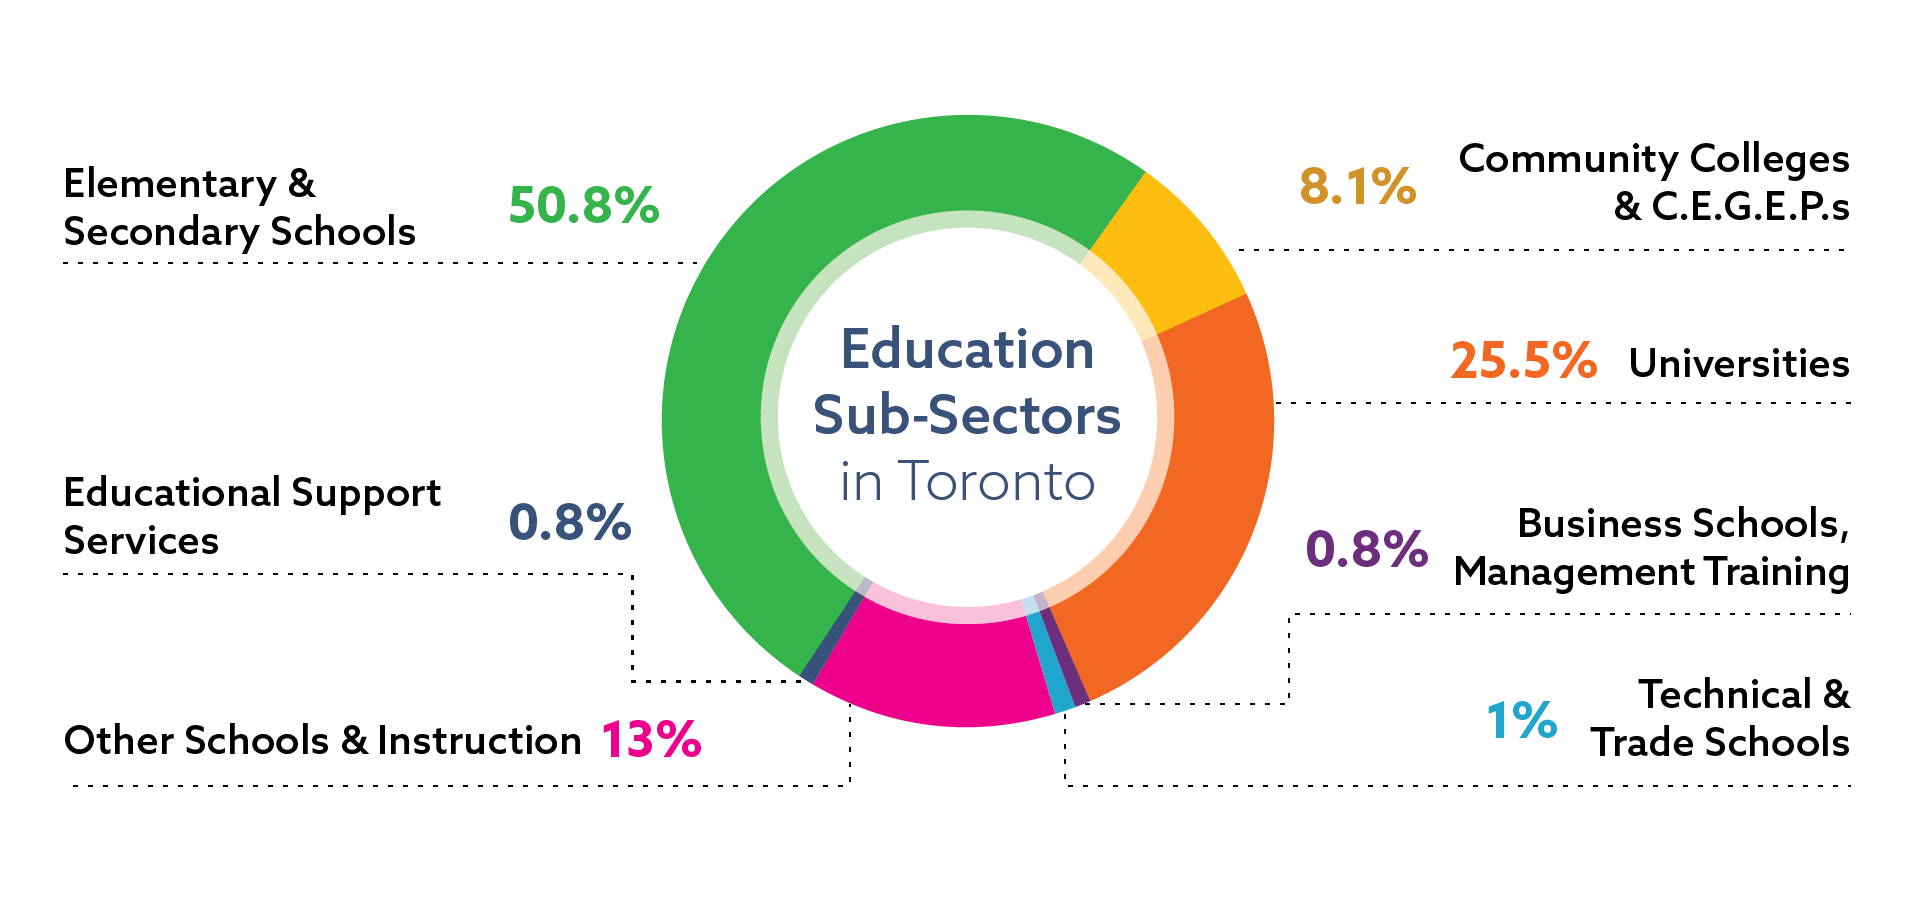 Distribution of jobs in the education sector in Toronto, by sub-sector: elementary and secondary schools 50.8 percent of sector jobs; universities 25.5 percent of sector jobs; other schools and instruction 13 percent of sector jobs; community colleges 8.1 percent of sector jobs; business schools and management training 0.8 percent of sector jobs; educational support services 0.8 percent of sector jobs